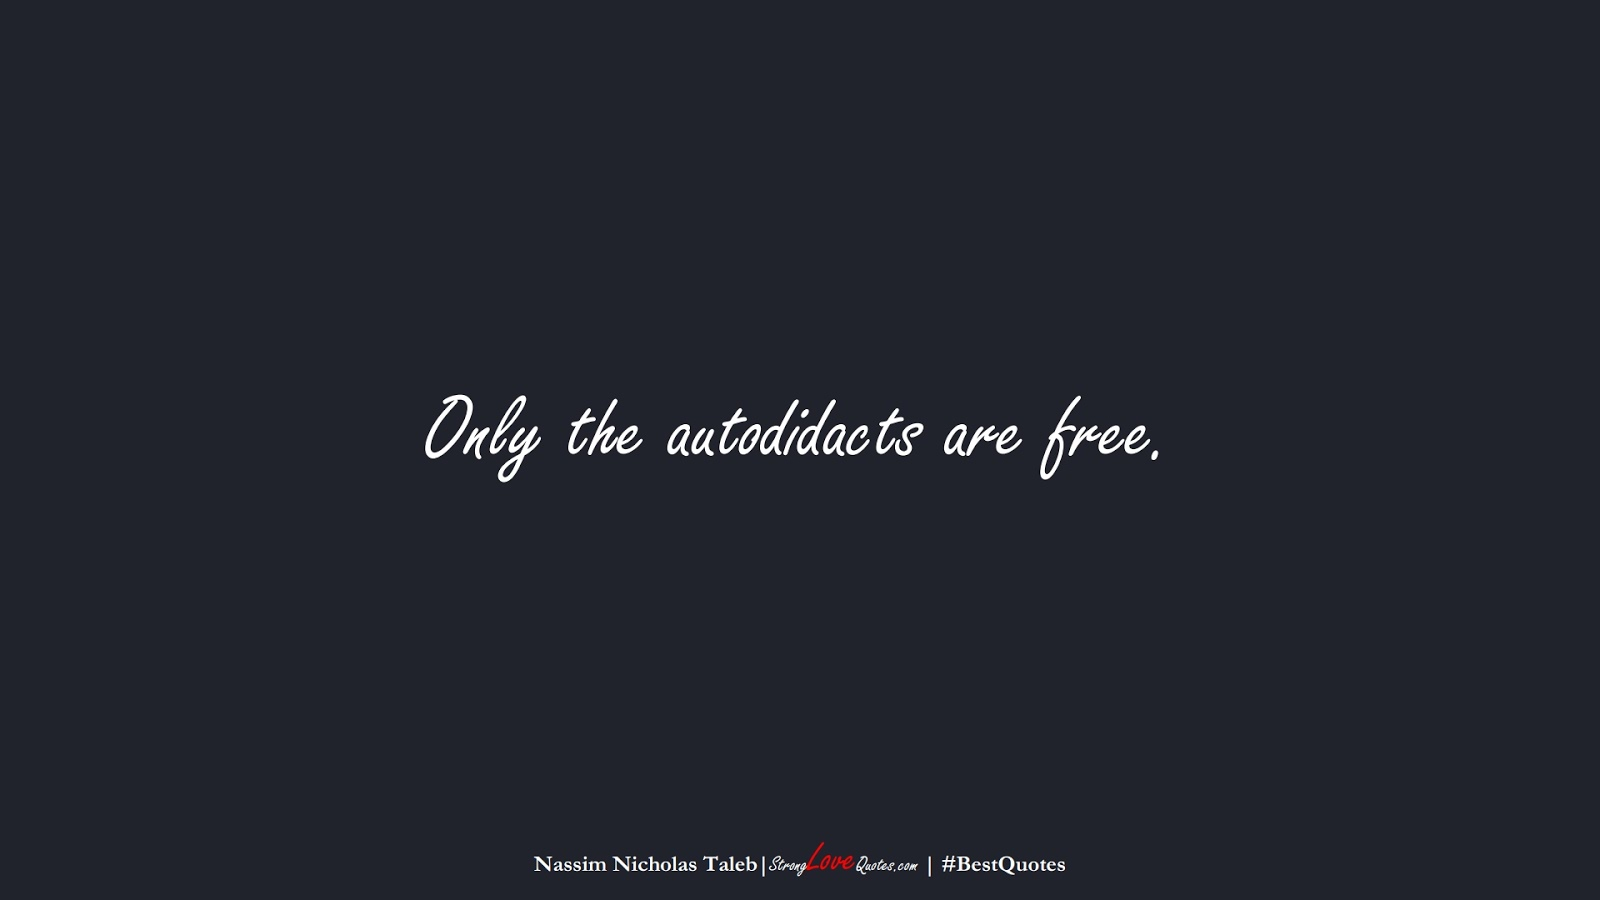 Only the autodidacts are free. (Nassim Nicholas Taleb);  #BestQuotes